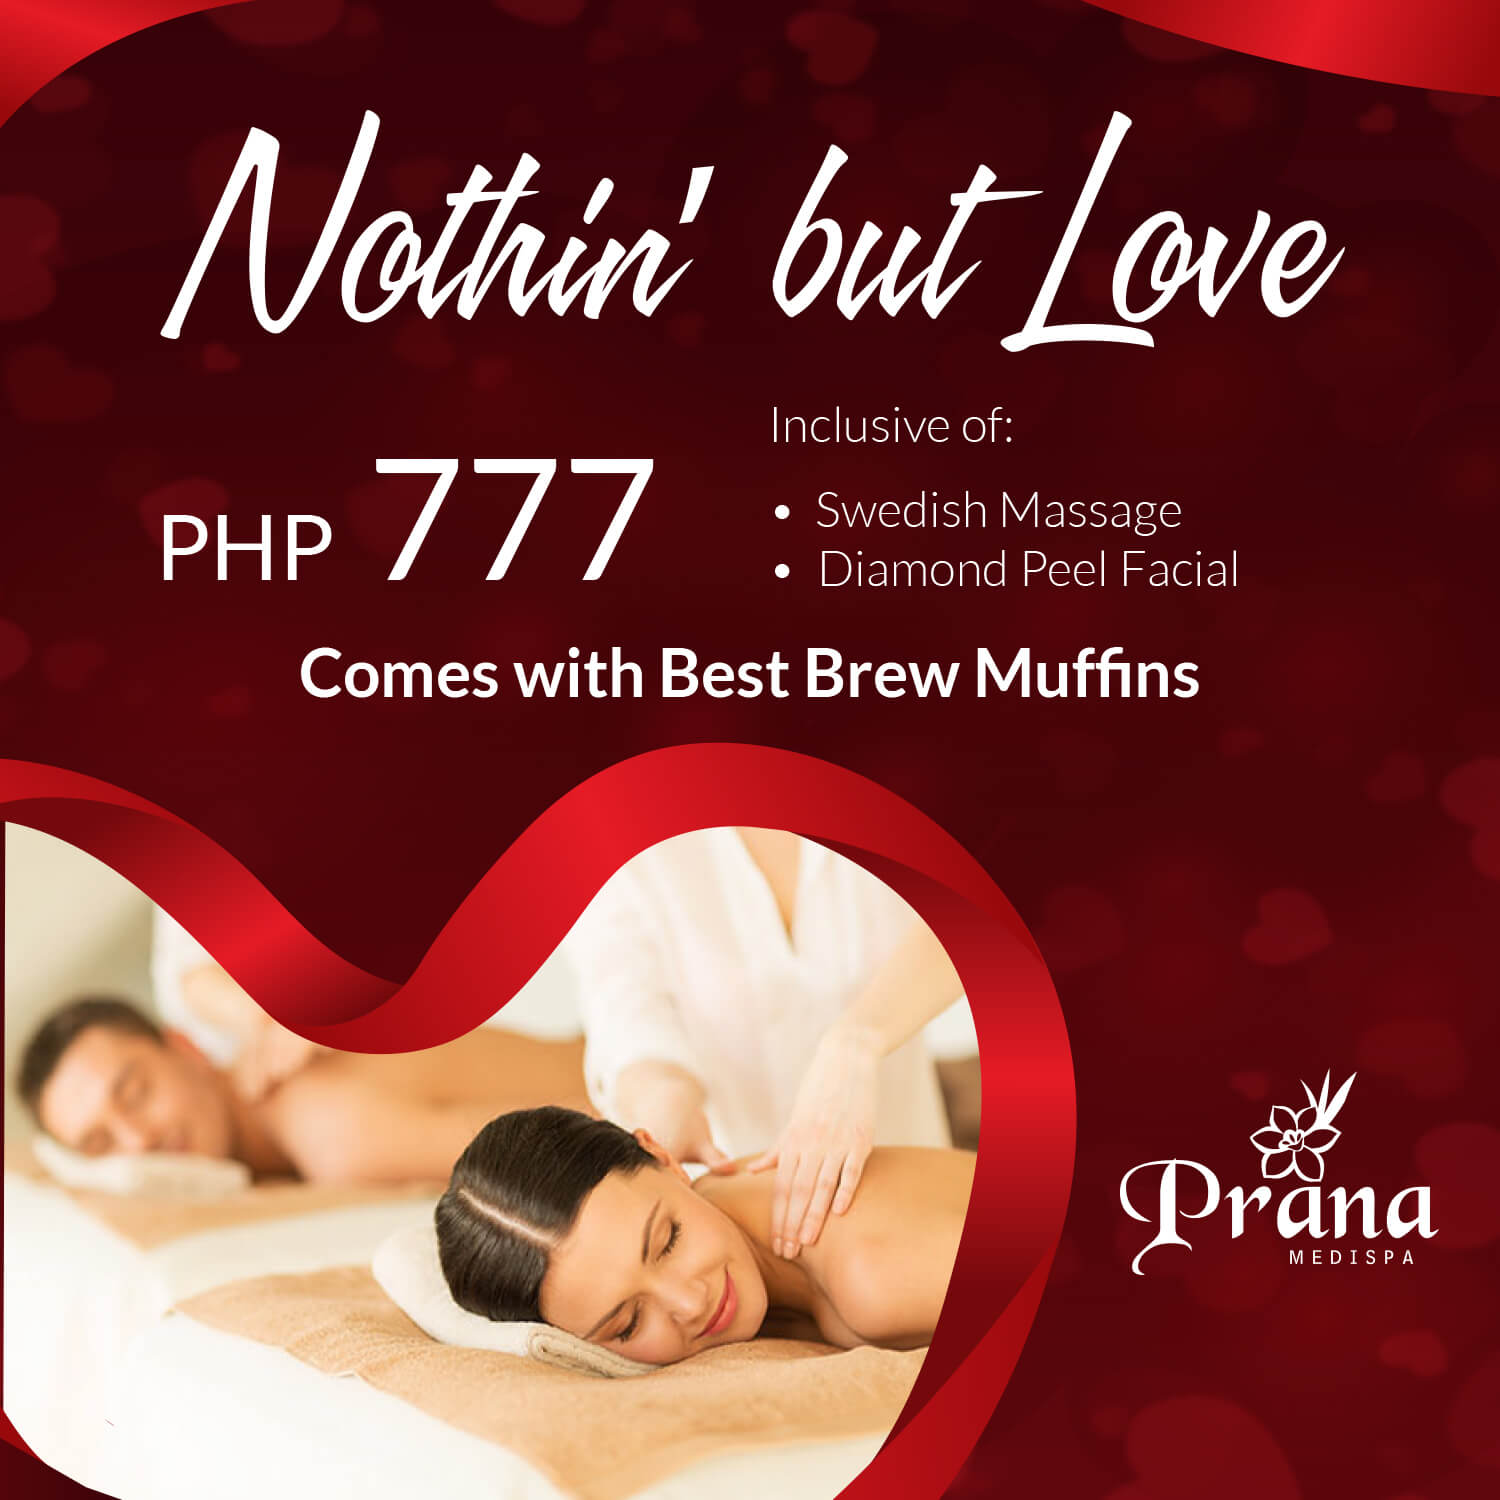 Prana Medispa February Promo: Nothin' but Love Promo Packages 2019